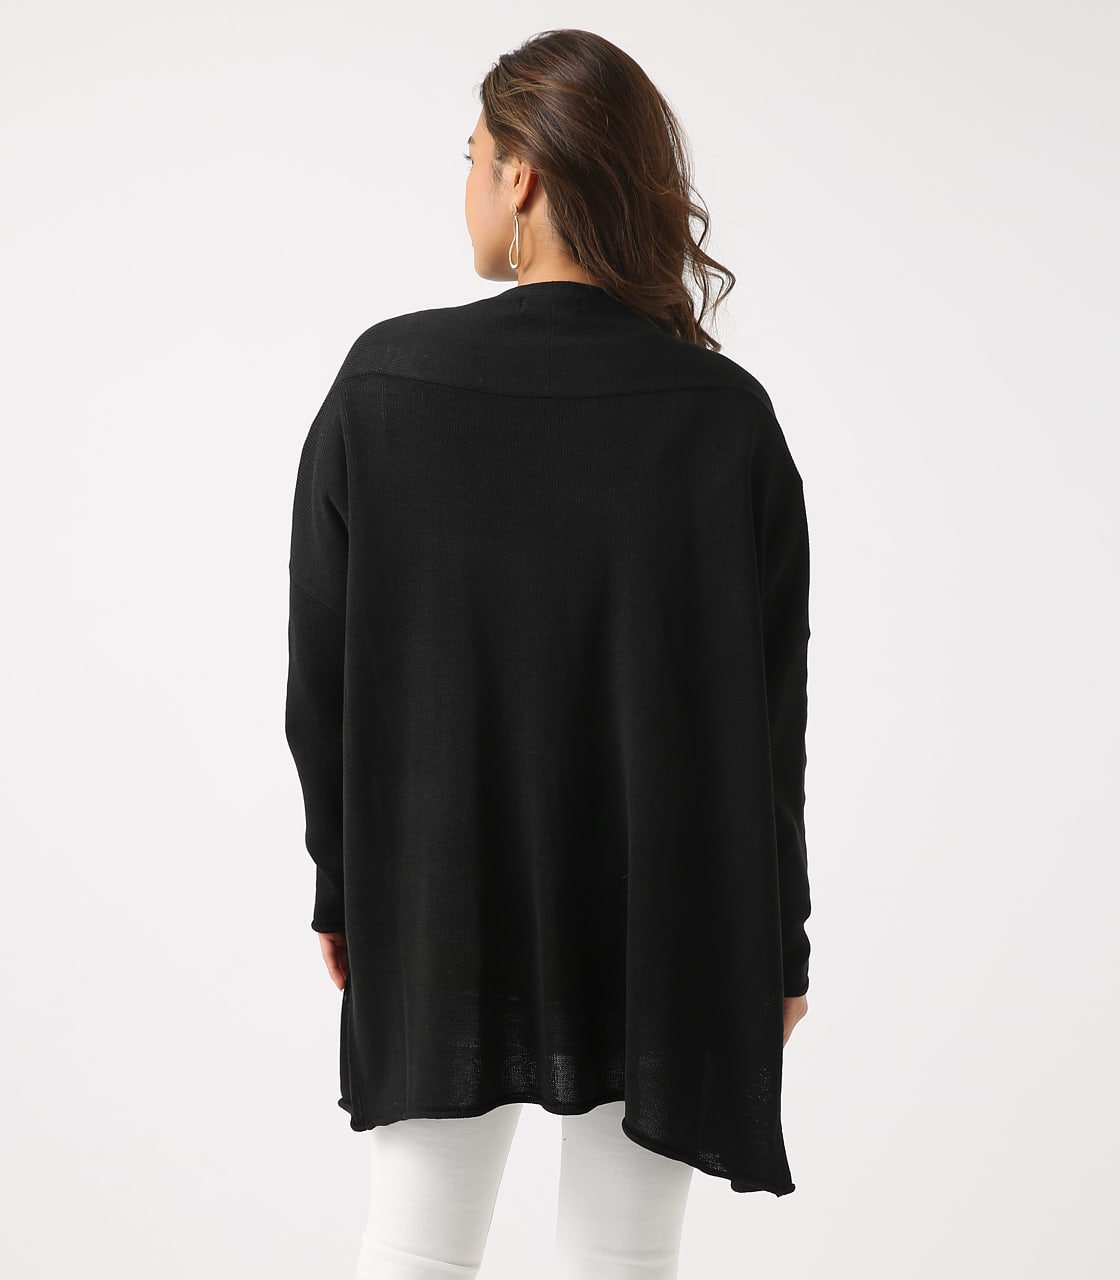 SHEER KNIT CARDIGAN 詳細画像 BLK 7